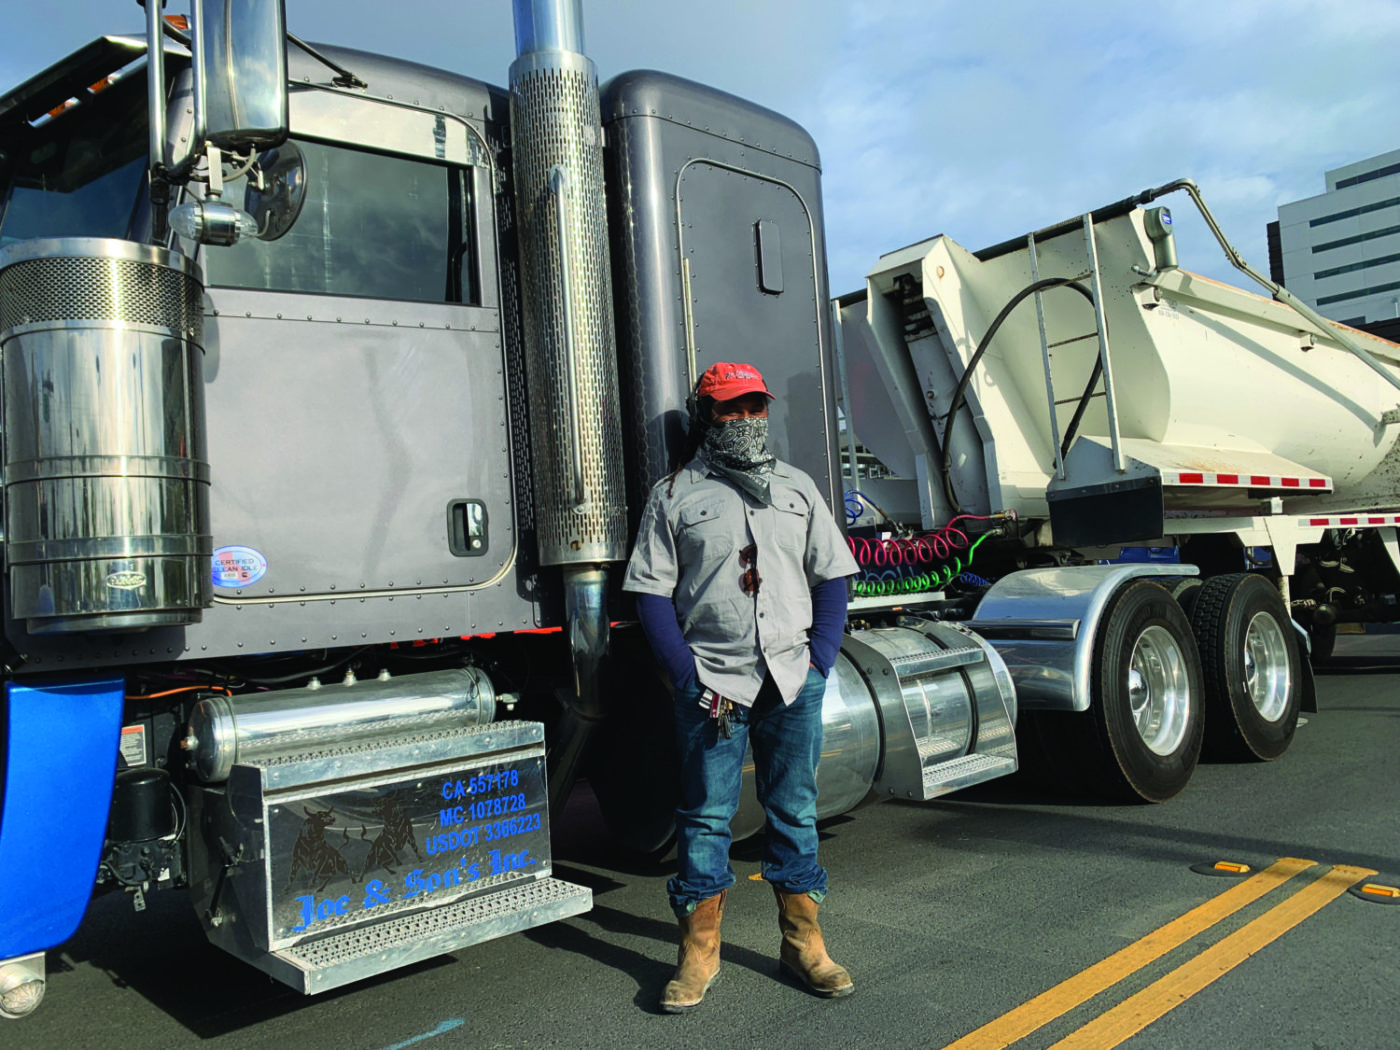 Walter-Joe-and-Sons-trucking-UCSF-job-site-shutdown-043021-by-Griffin-1400x1050, Black truckers shut down multi-million-dollar UCSF job site for 4.5 hours, Local News & Views